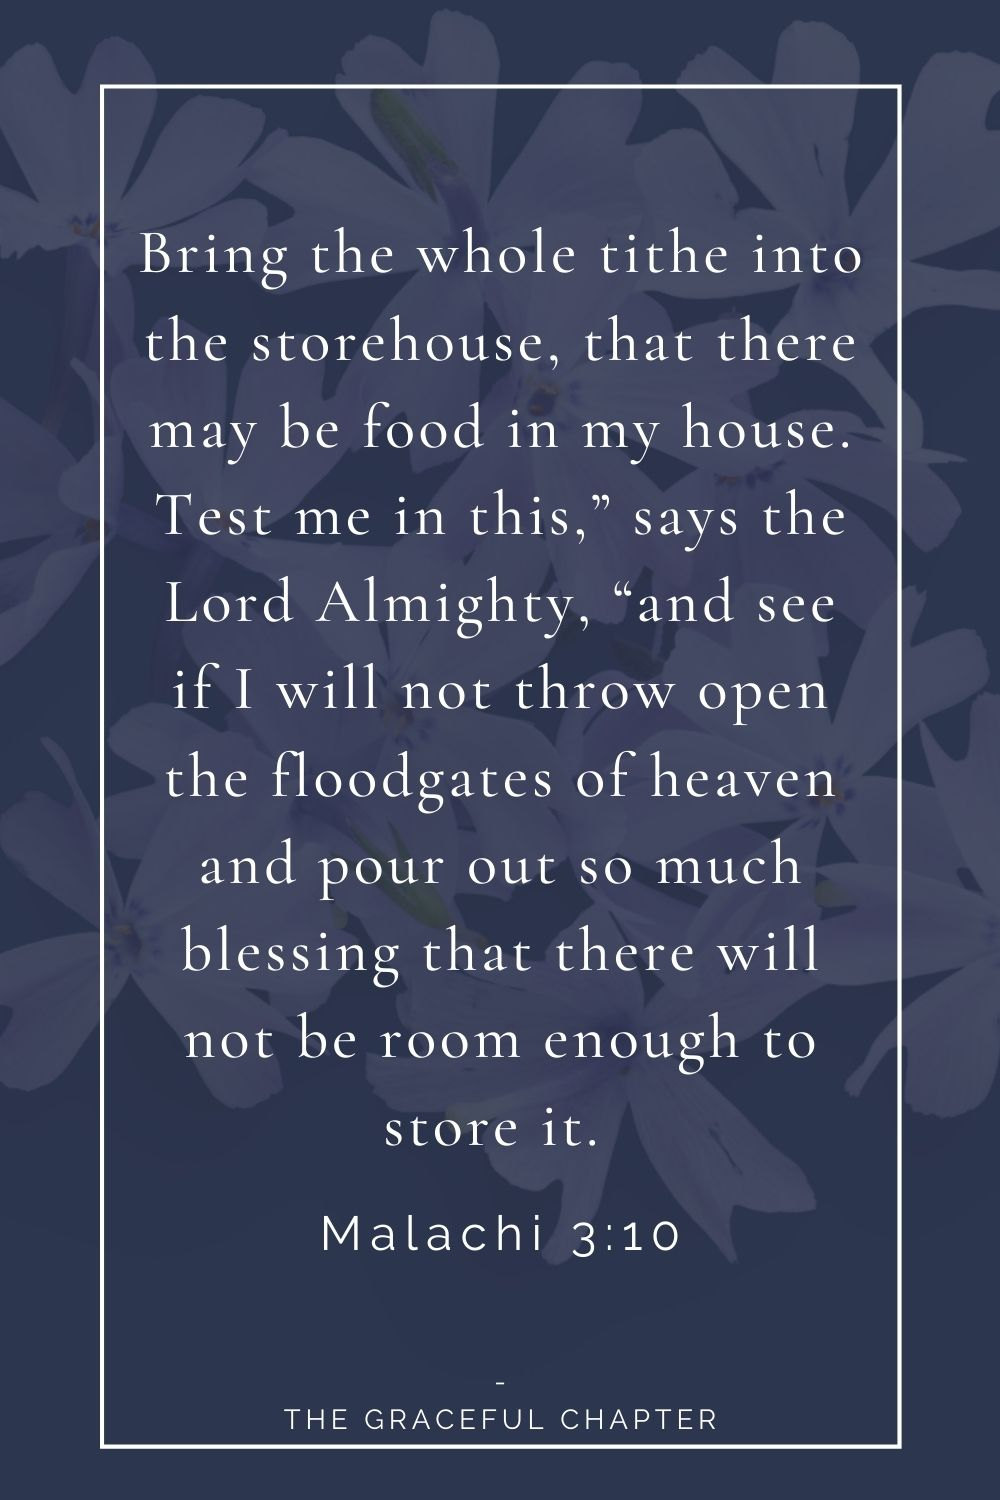 """Bring the whole tithe into the storehouse, that there may be food in my house. Test me in this,"""" says the Lord Almighty, """"and see if I will not throw open the floodgates of heaven and pour out so much blessing that there will not be room enough to store it.  Malachi 3:10"""